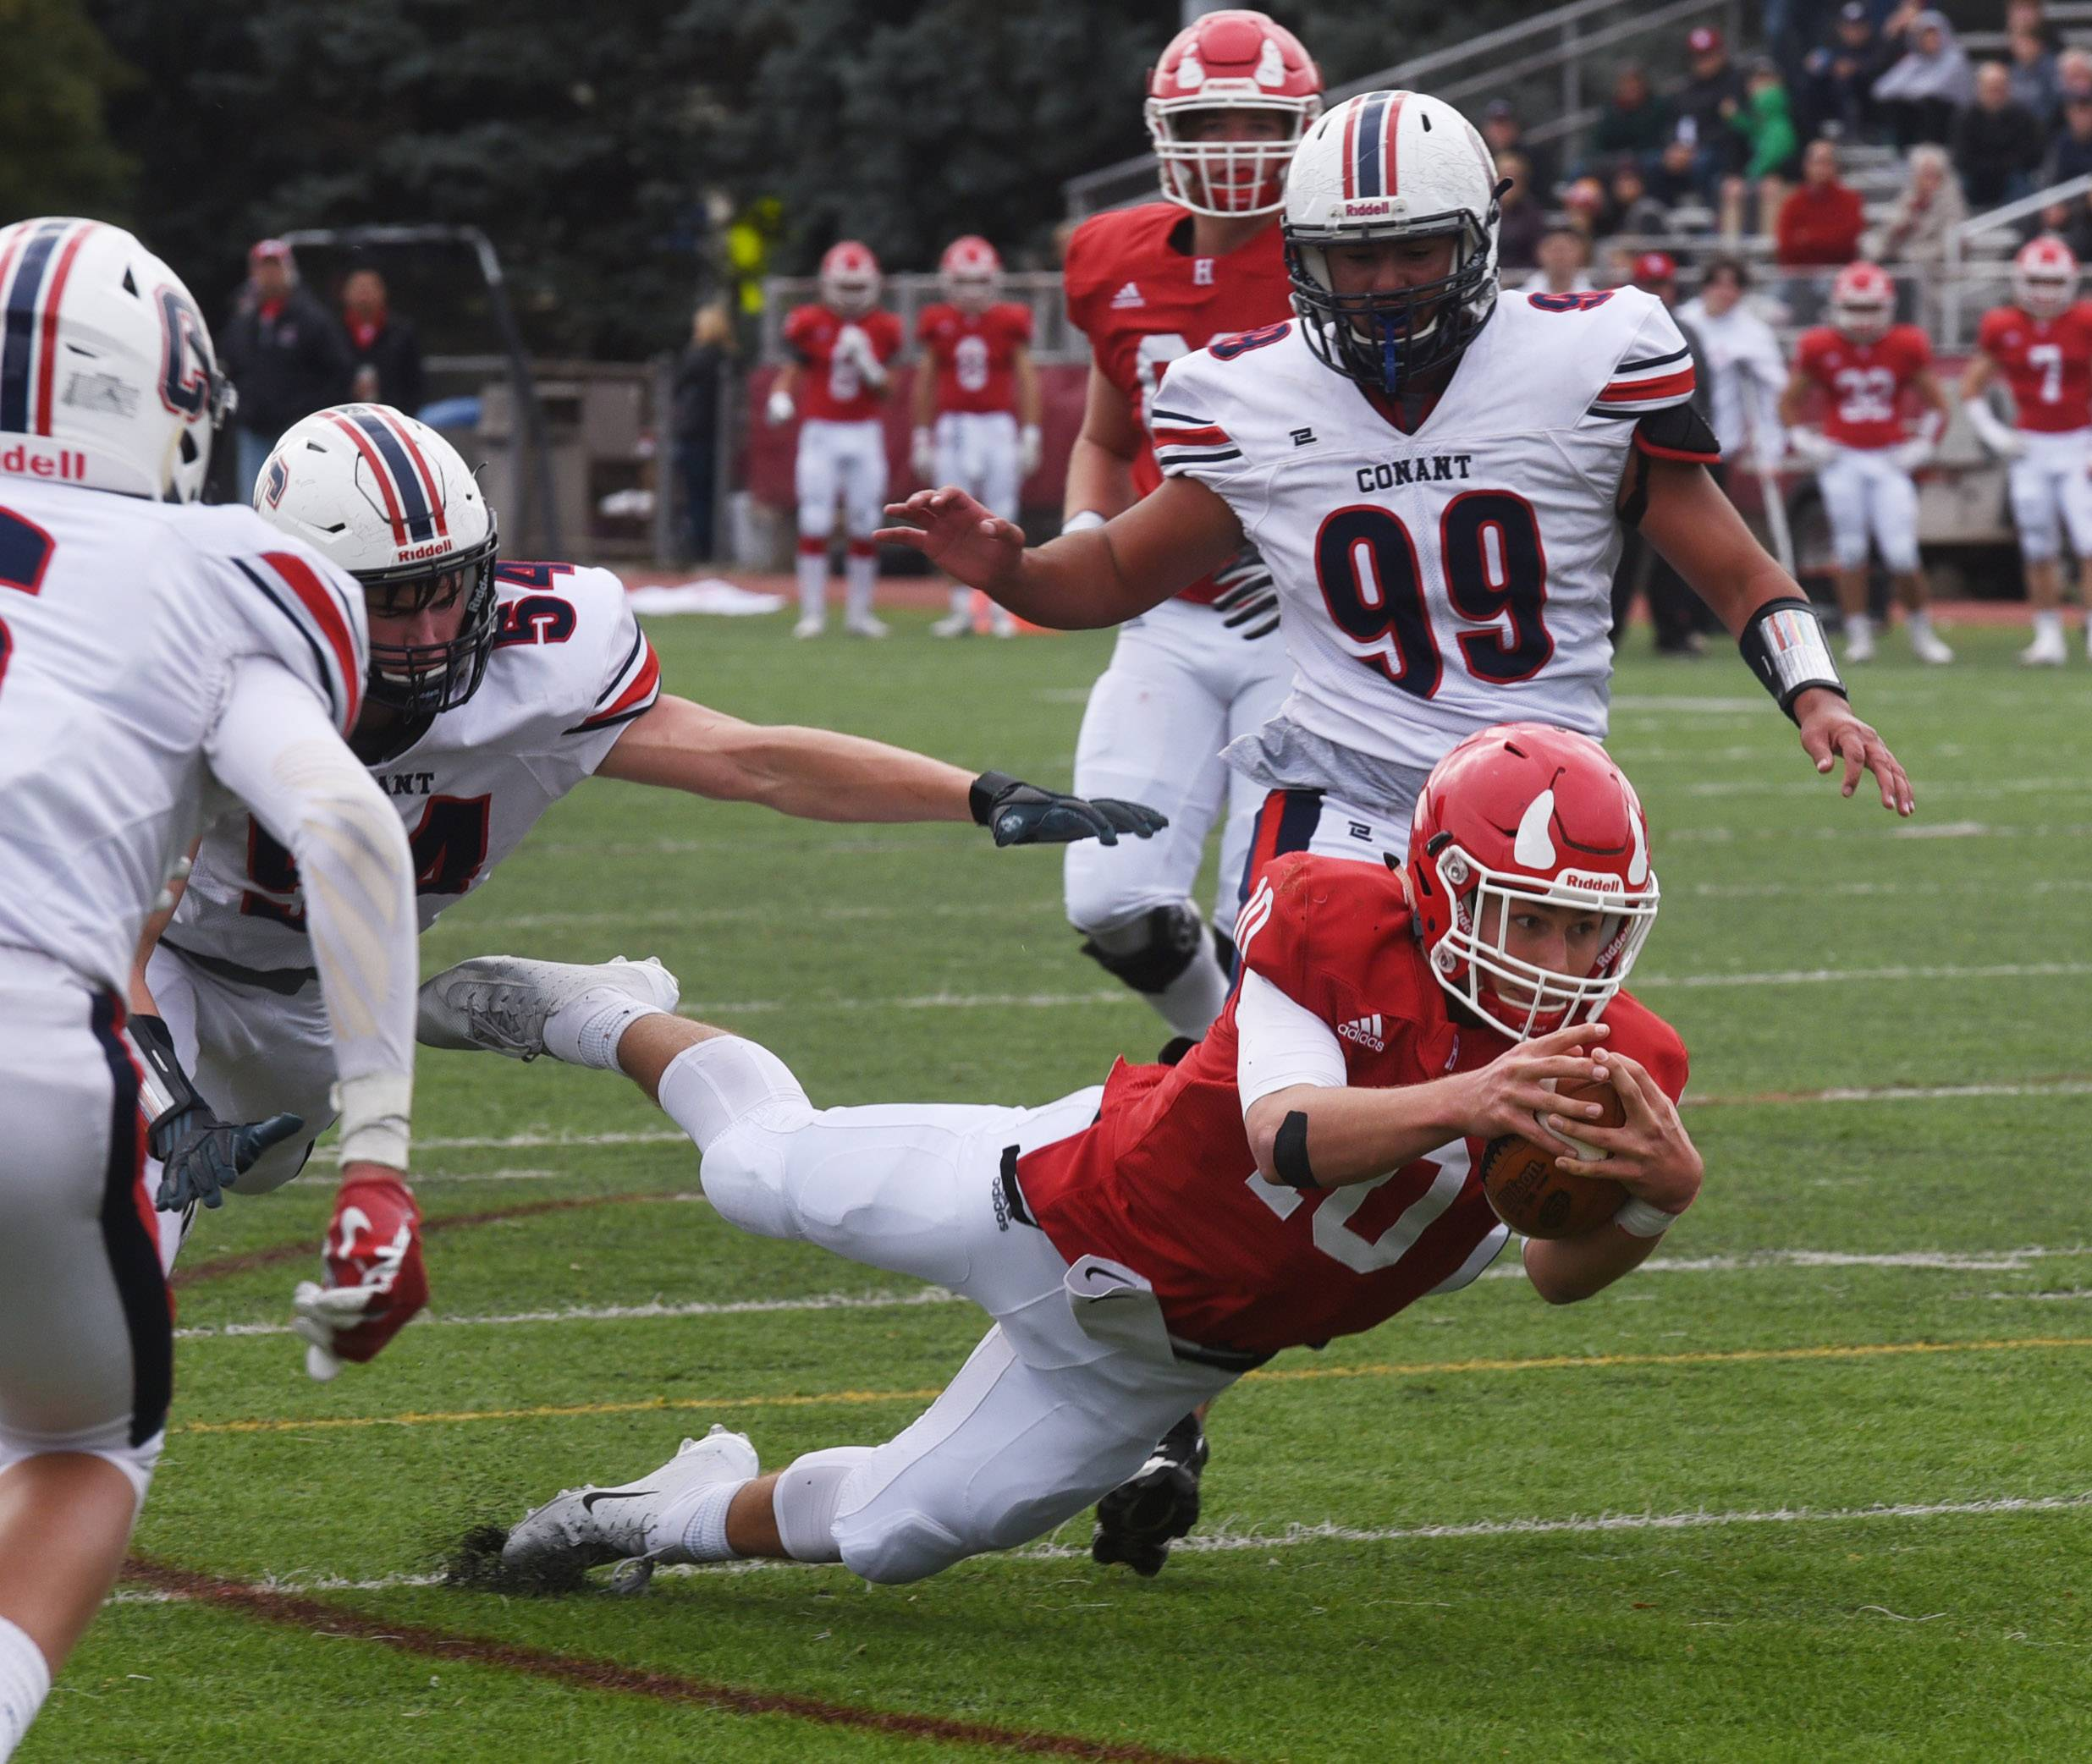 Hinsdale Central quarterback Matthew Rush stretches for extra yardage against Conant during Saturday's Class 8A playoff game in Hinsdale.